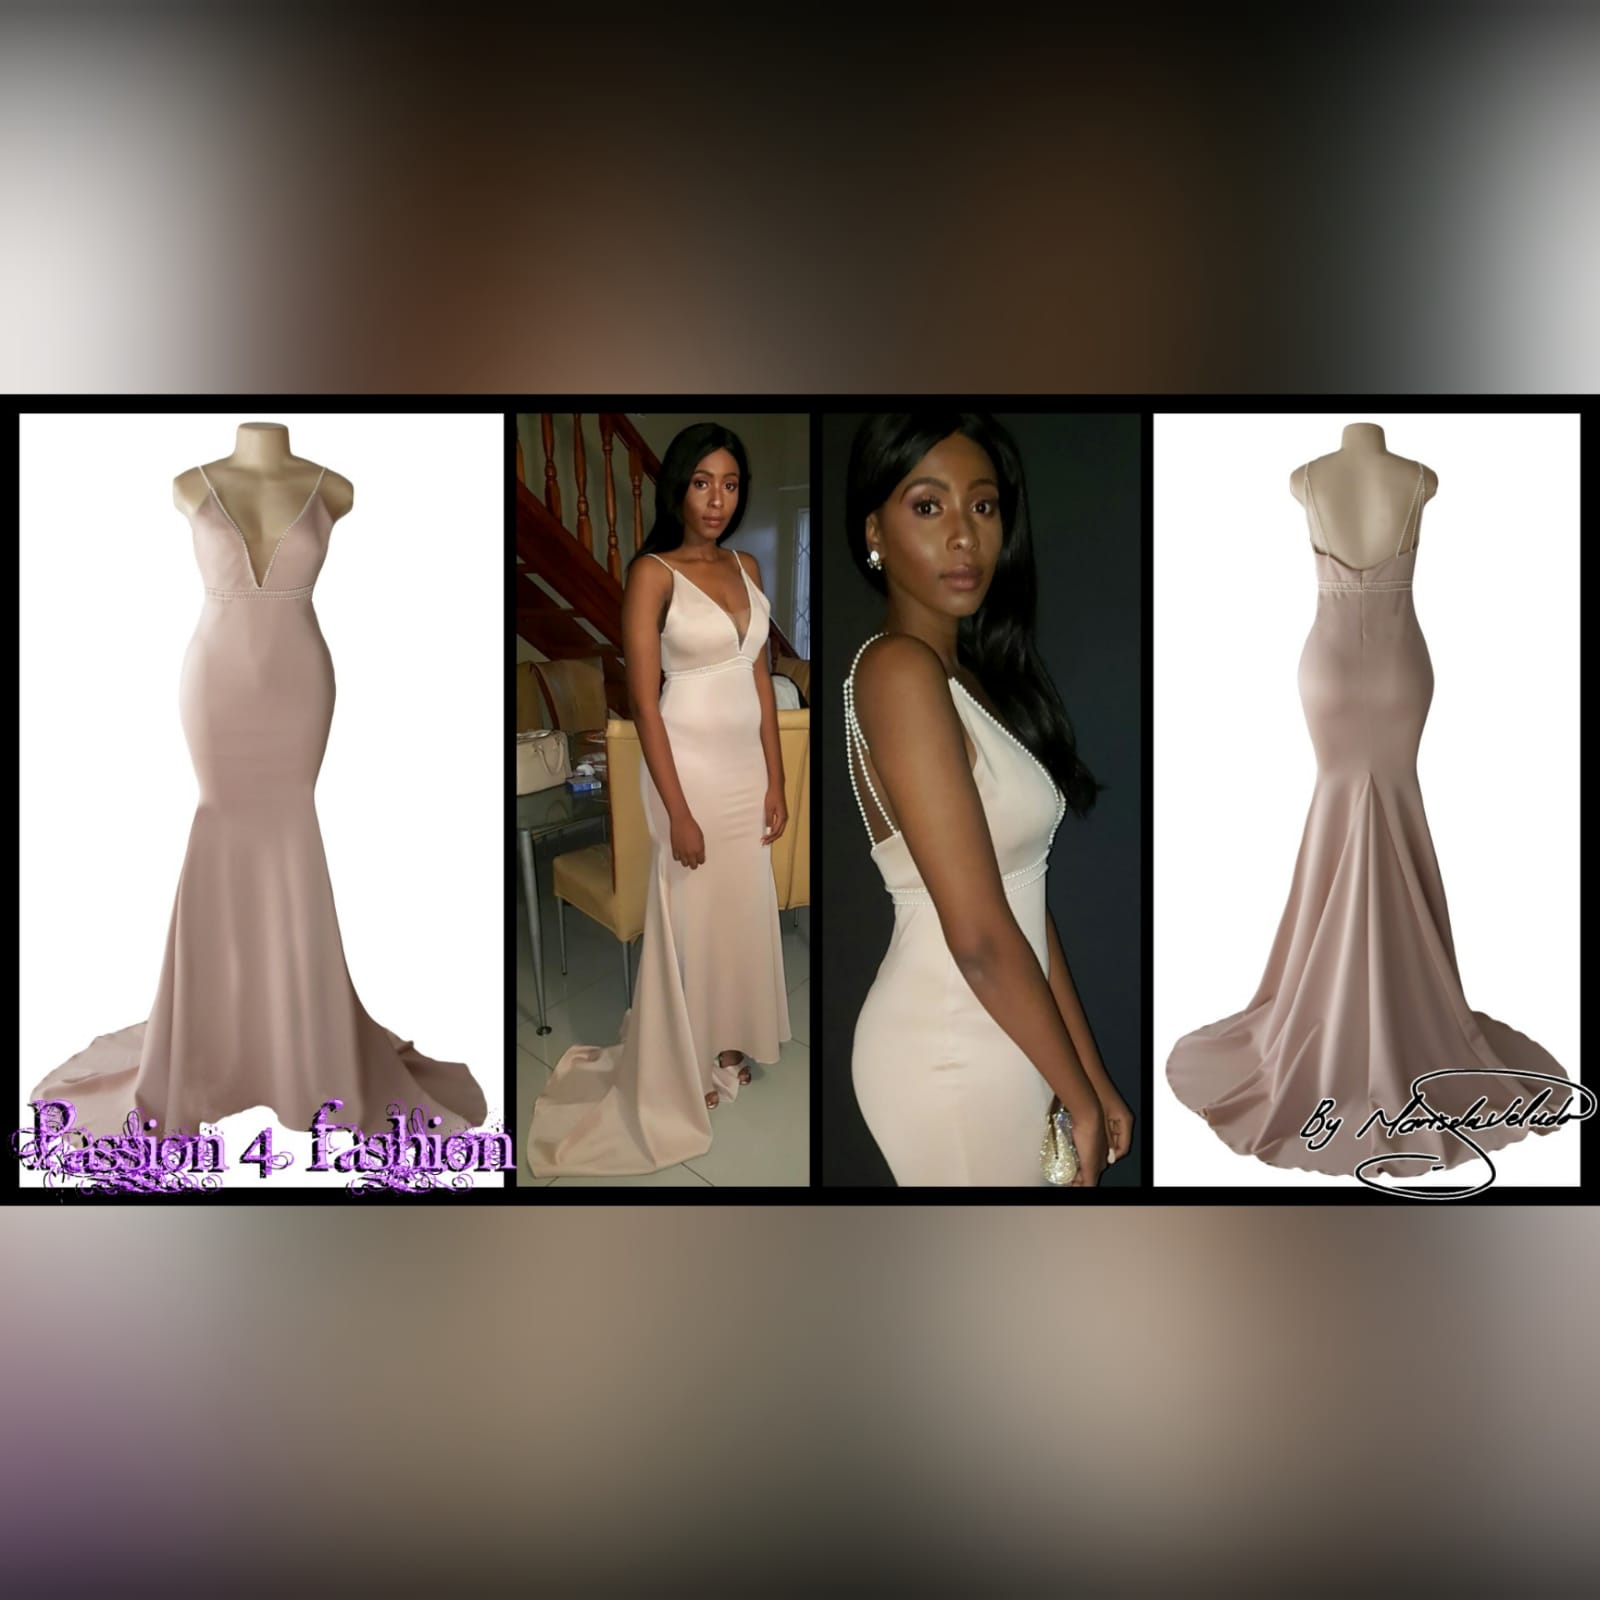 Pink nude soft mermaid prom dress with pearls 6 pink nude soft mermaid prom dress with an illusion plunging neckline, with a low open back, detailed with pearls on the waist and shoulder straps.